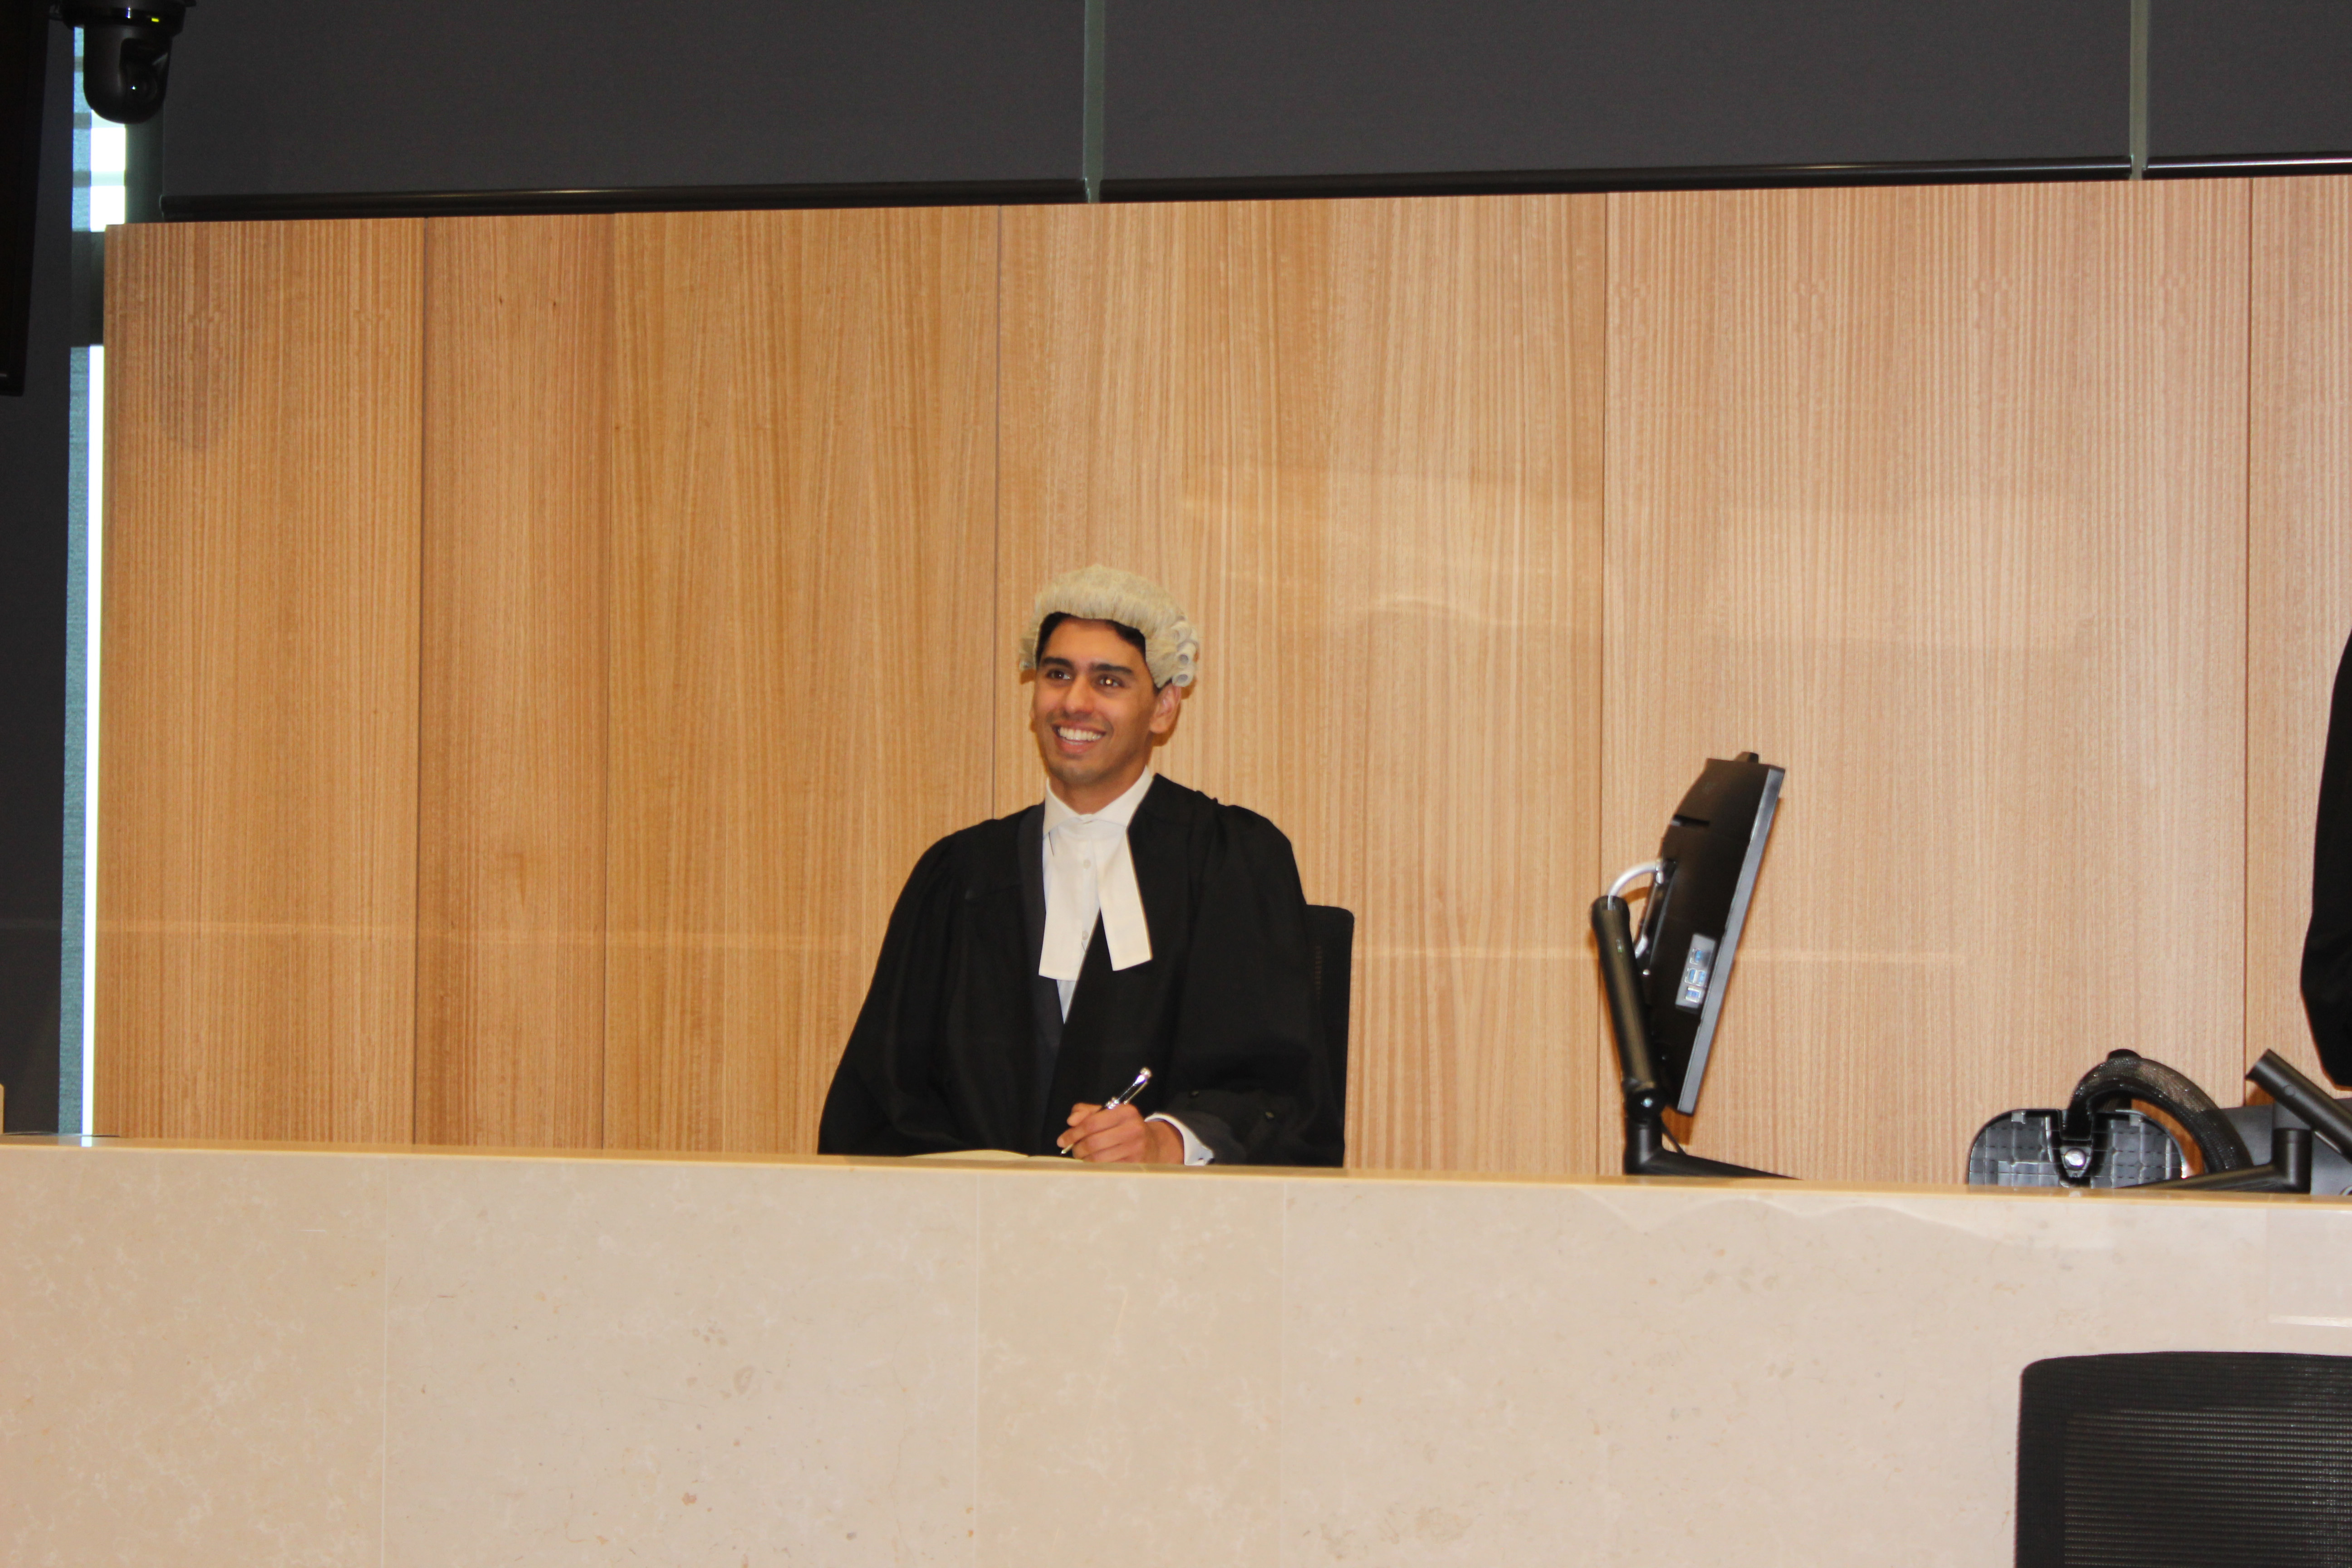 Ravi sits in the court room wearing a black gown and a while curly wig. He is smiling.